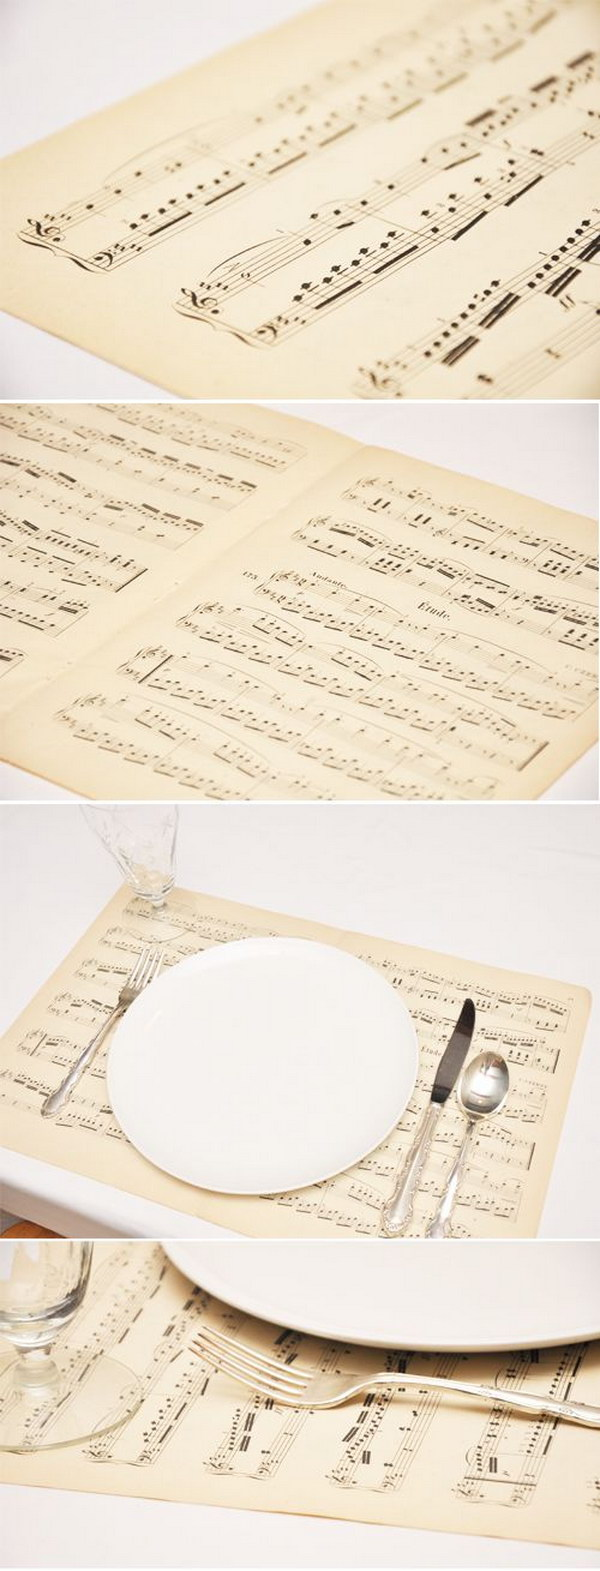 Sheet Music for Placemants.